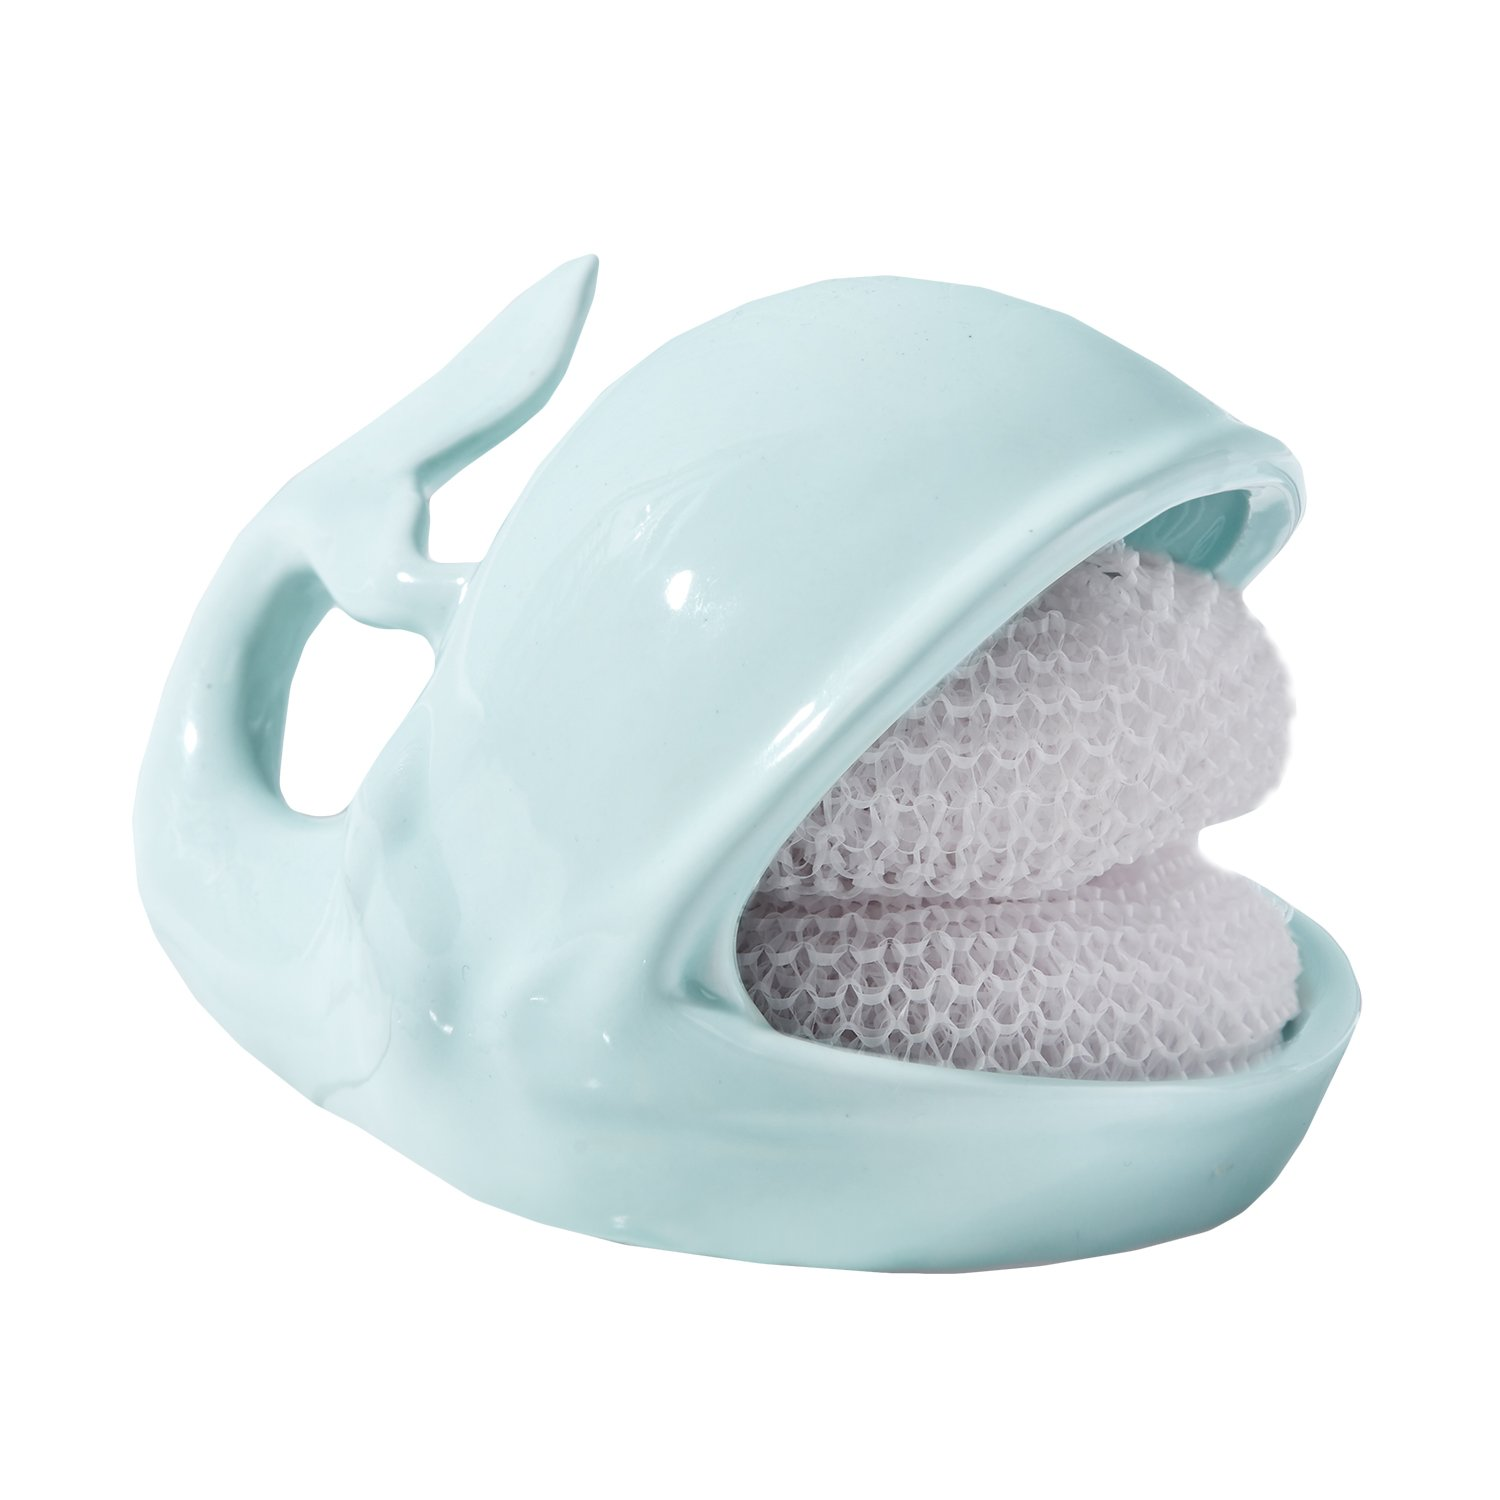 Amazon.com: Two\'s Company 51216 Willy the Whale Sponge Holder Set ...